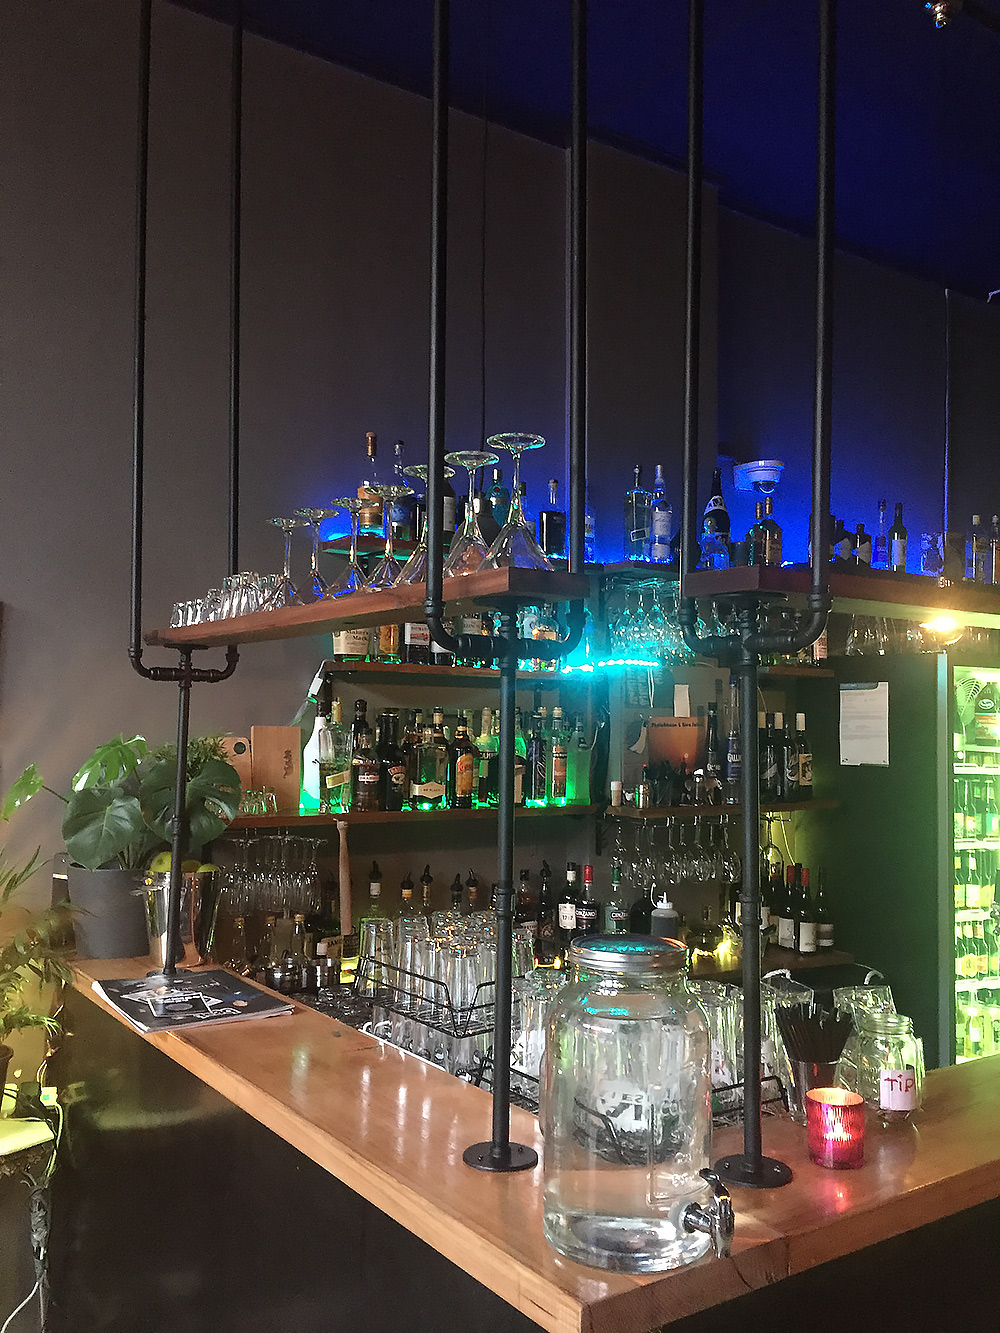 Industrial Overhead Bar Shelf - Sloth Bar Footscray